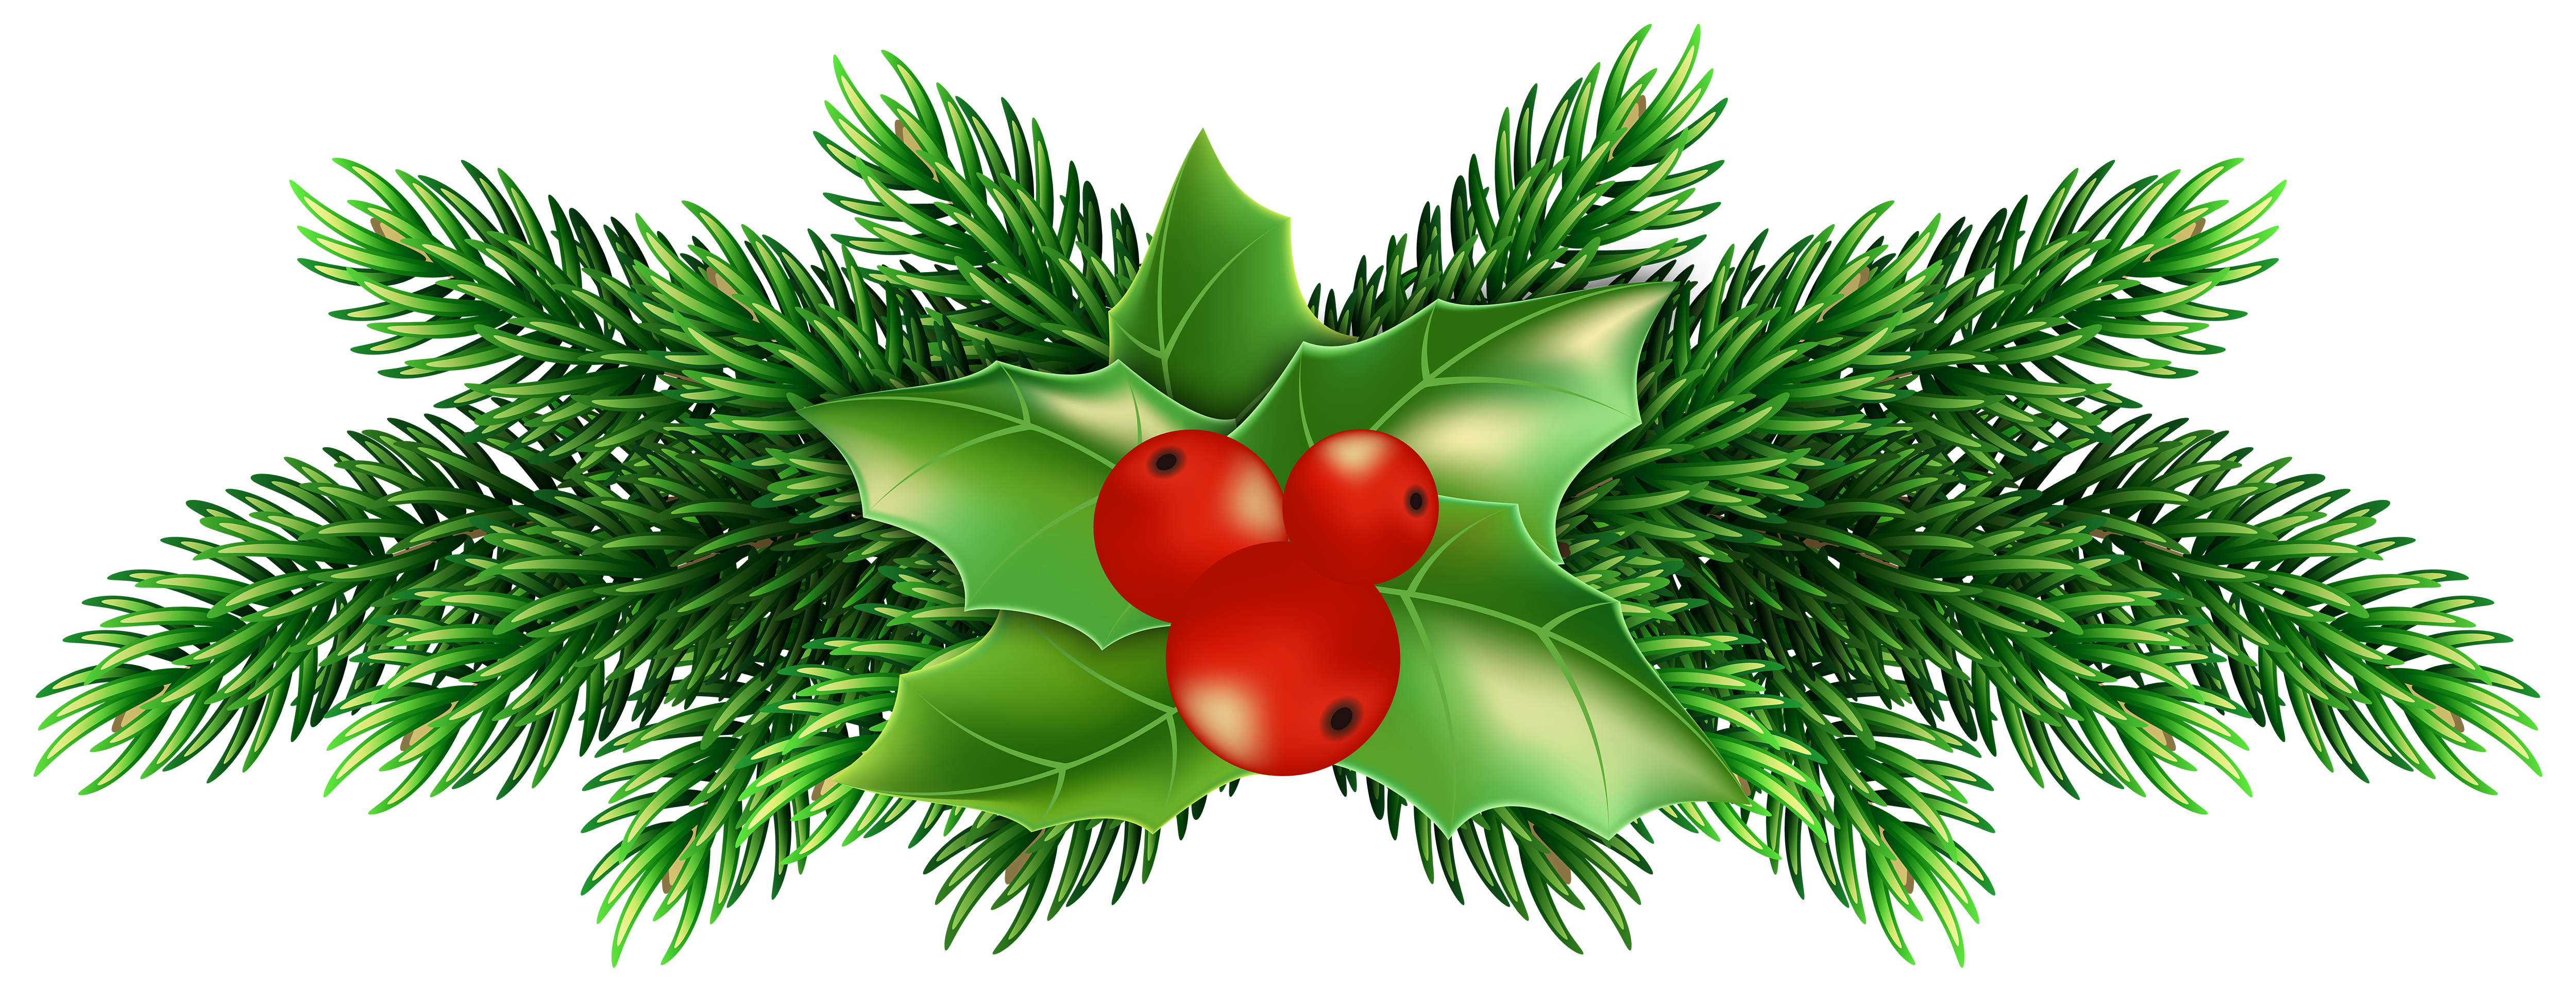 Christmas Clipart Holly.Clipart Leaves Christmas Clipart Leaves Christmas